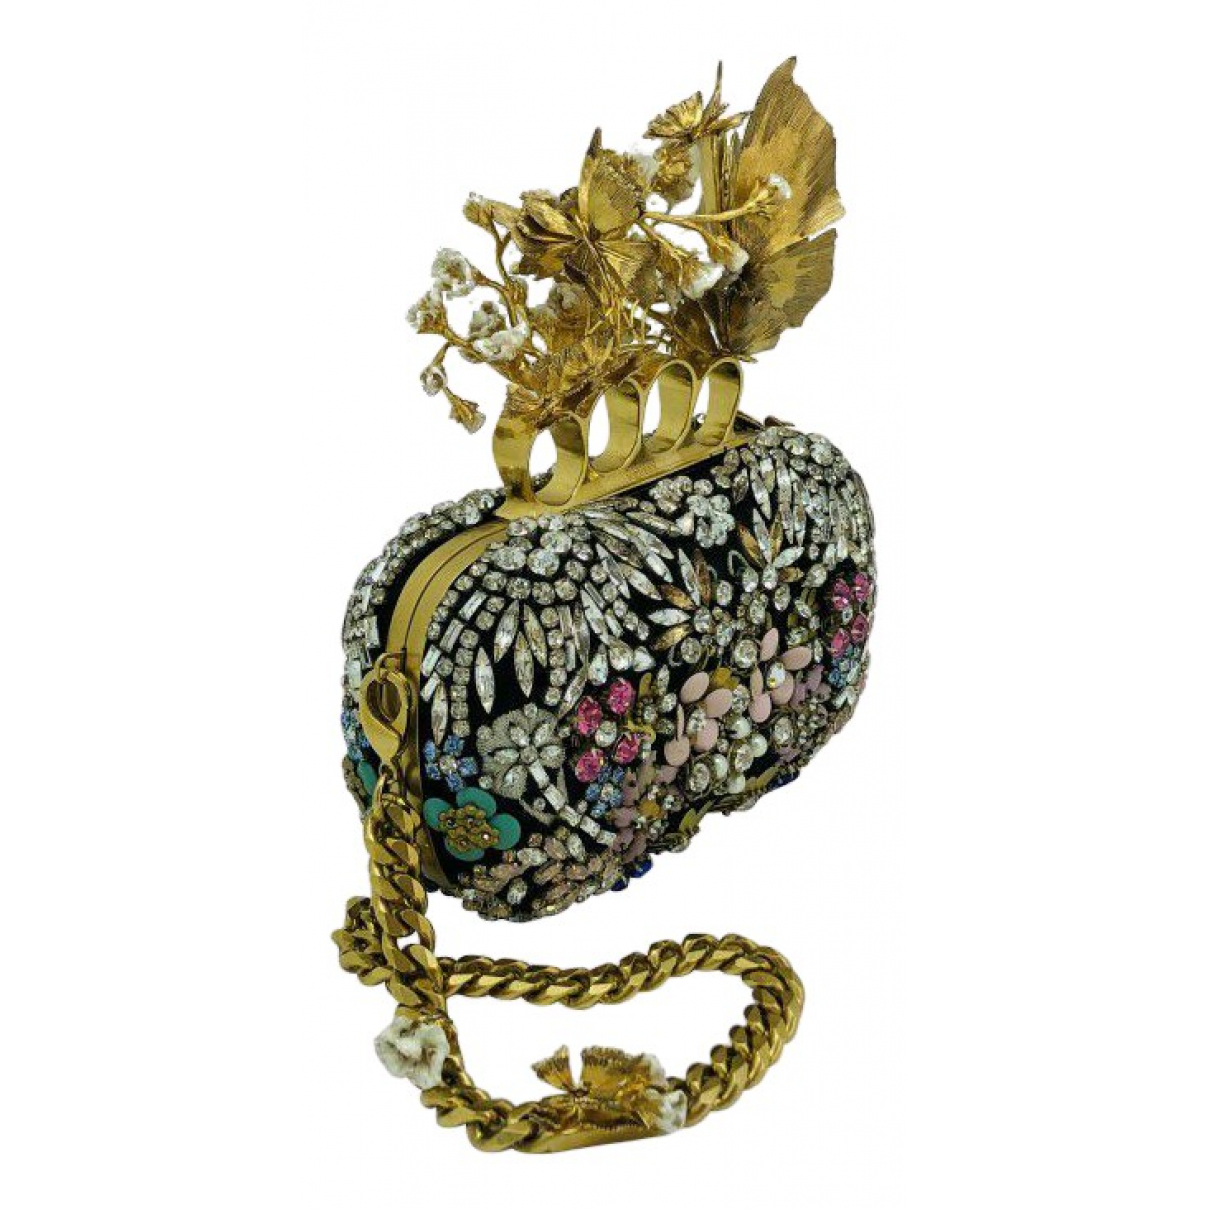 Alexander Mcqueen Knuckle Clutch in  Gold Leder